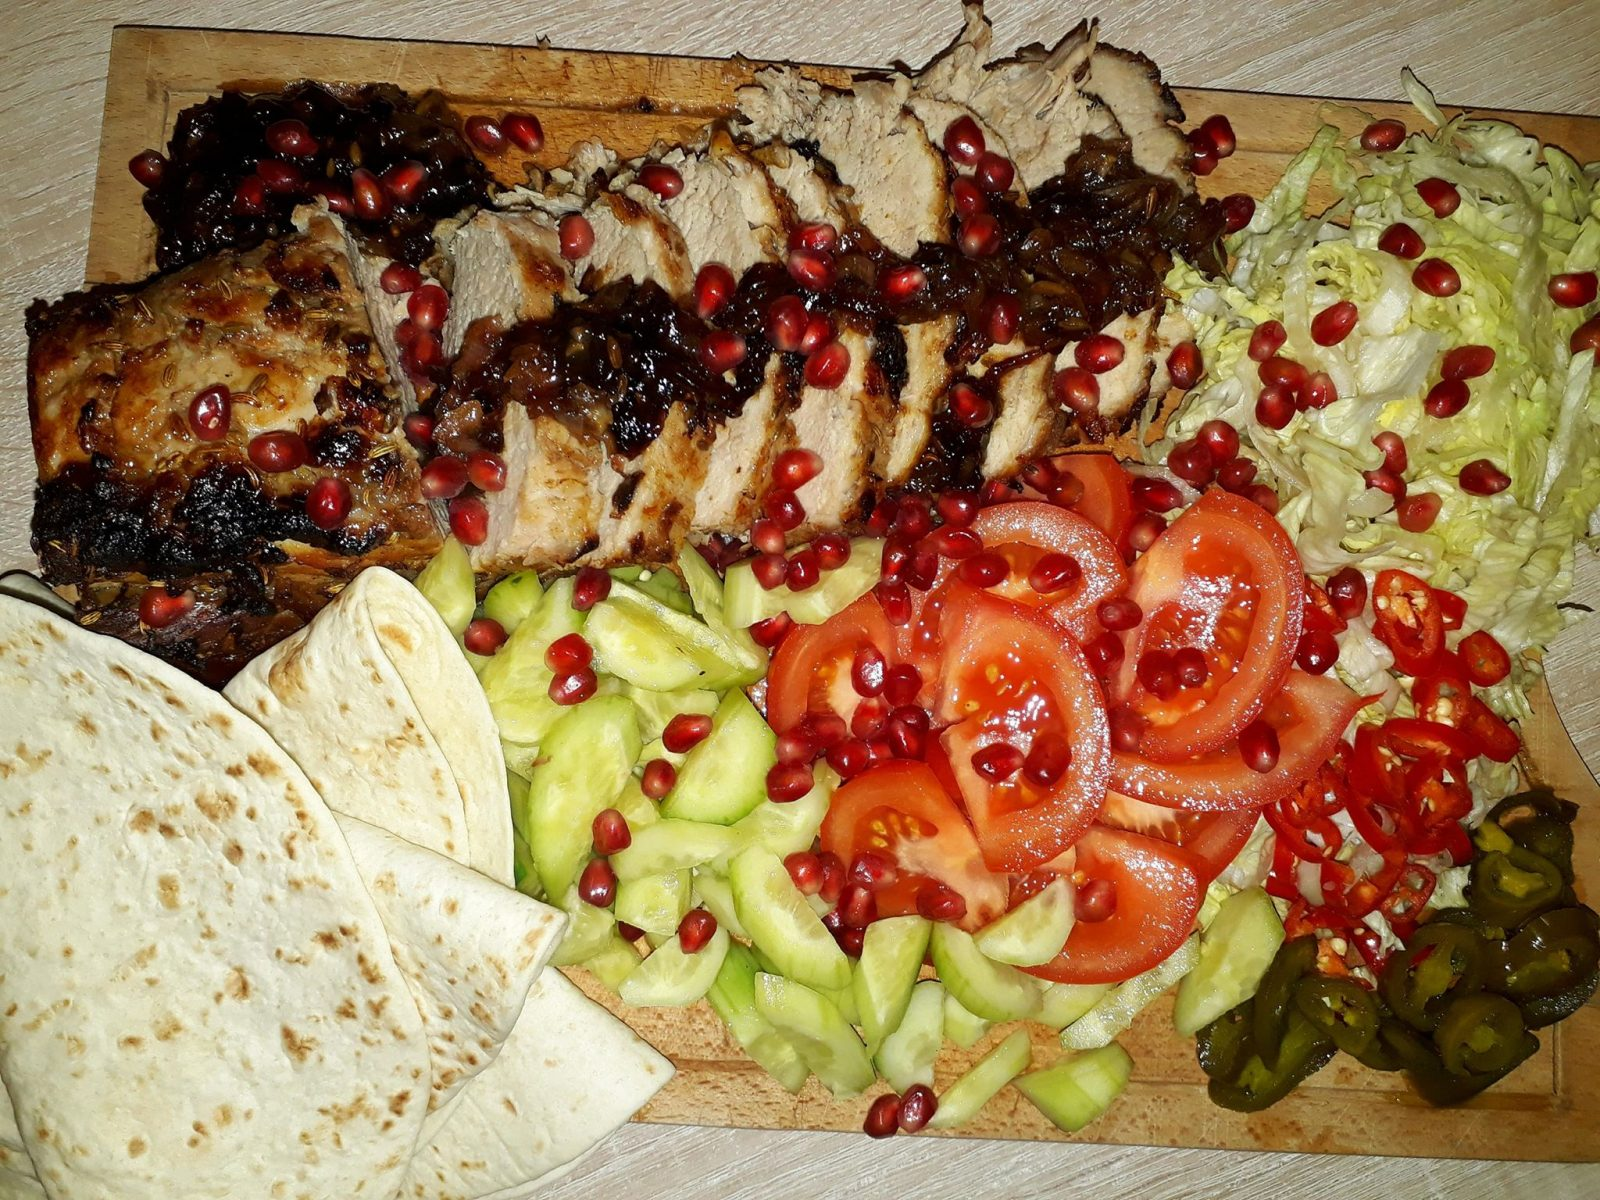 Posh pork kebab jamie olivers recipe maglianos comfort food as jamie says this is my dressed up version of a good old kebab beautiful roast pork sweet onions and all the extra trimmings people go mad for it forumfinder